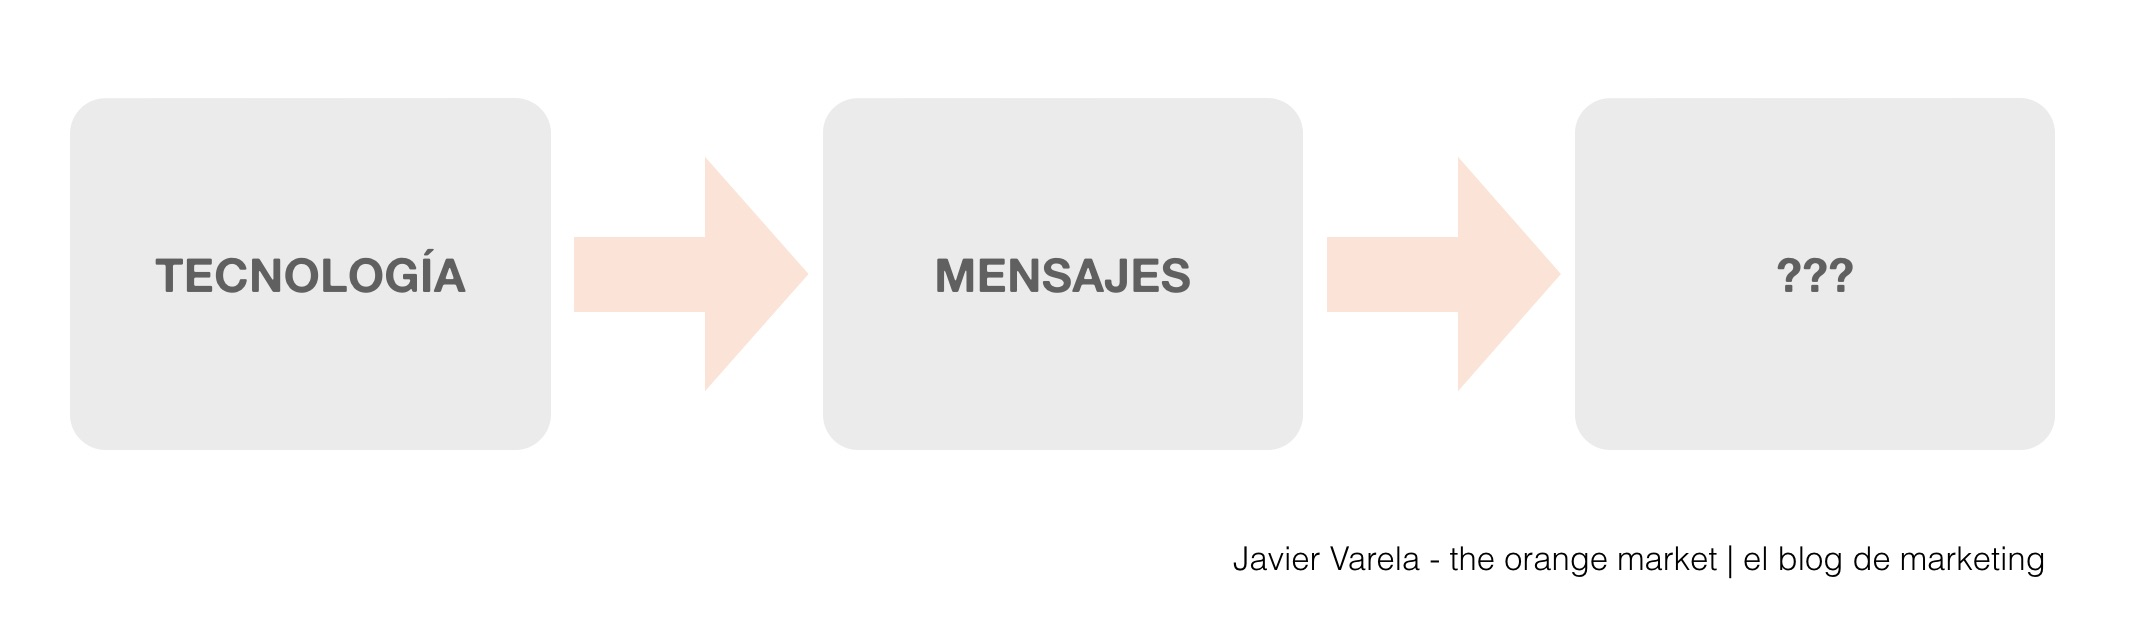 Metodologia POST - Javier Varela - Marketing en redes sociales